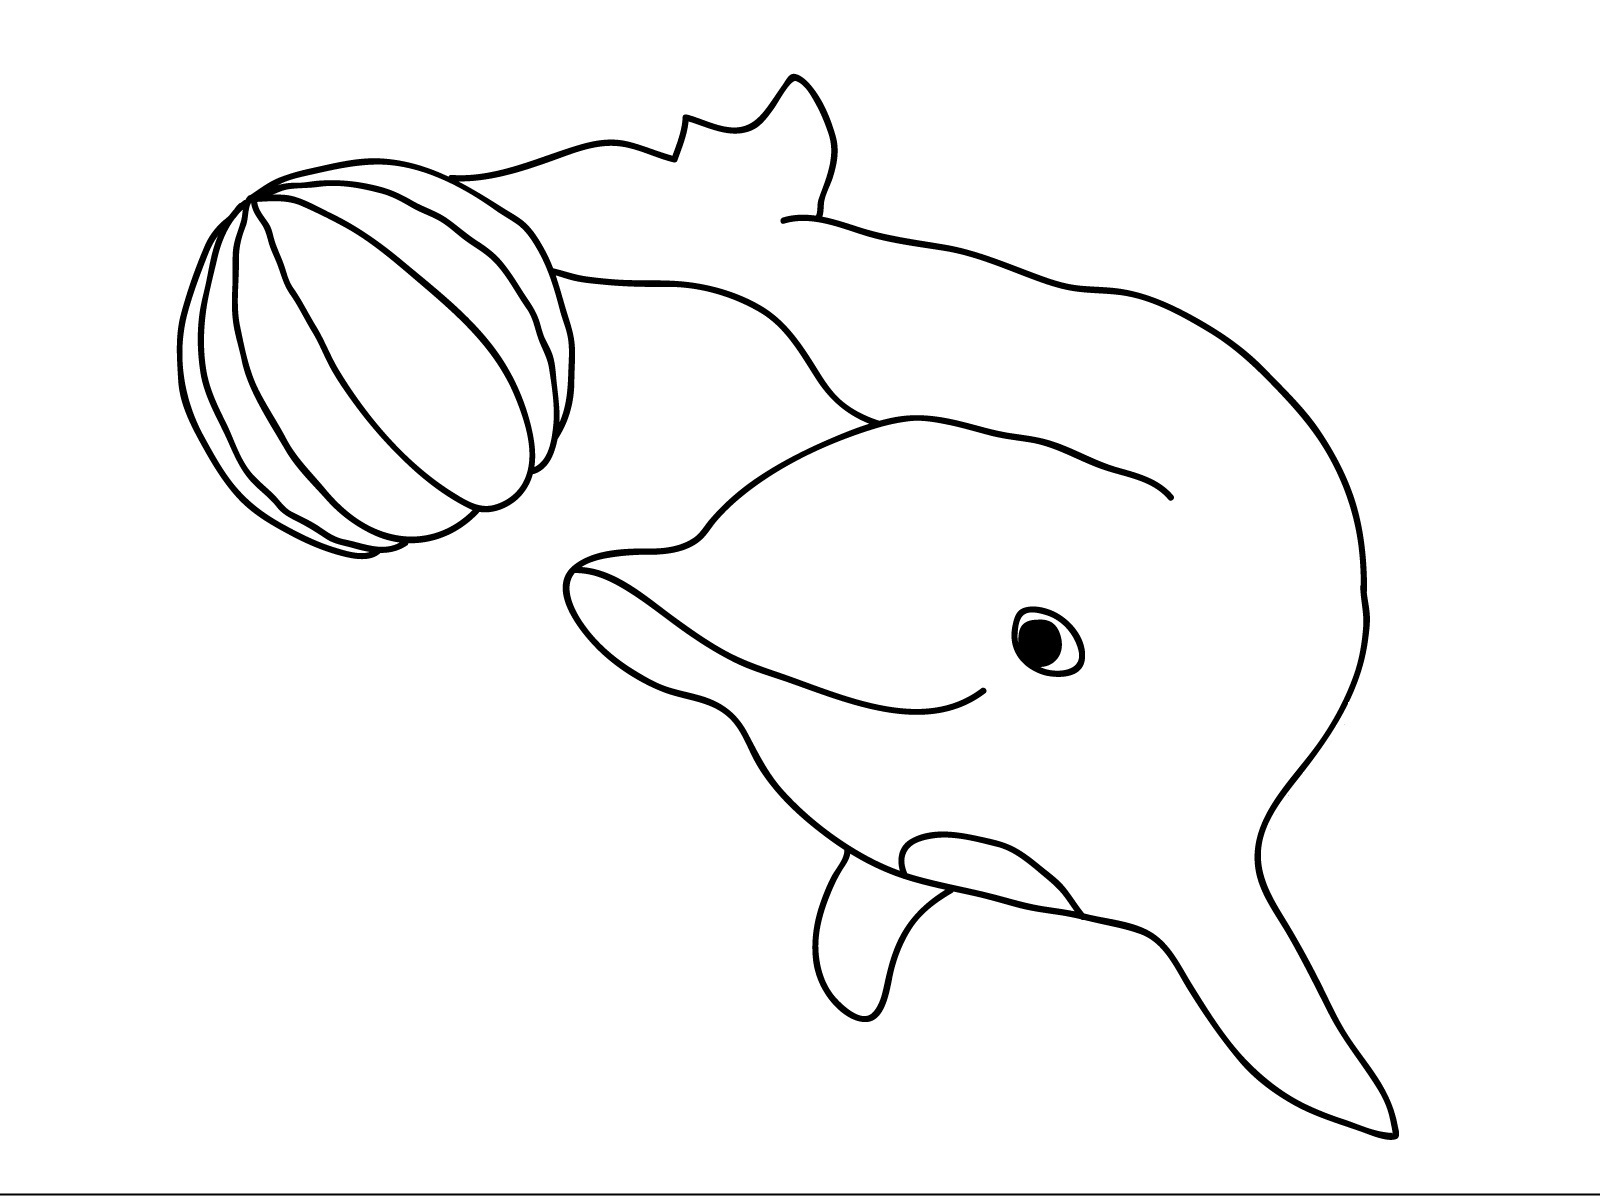 e coloring pages for dolphins - photo #49